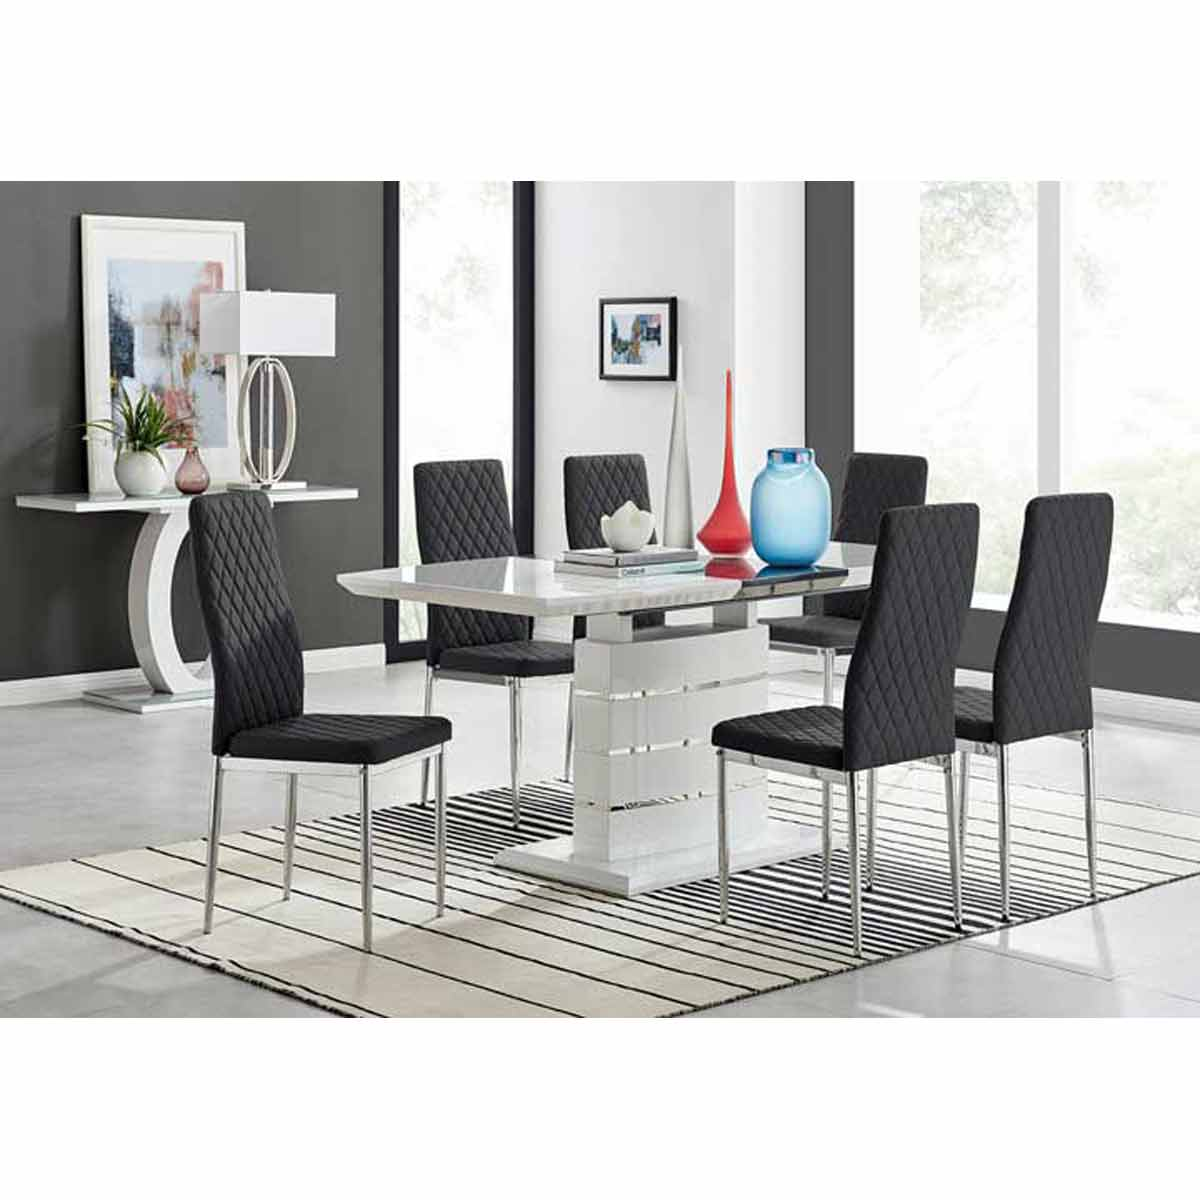 Furniture Box Renato 120cm High Gloss Extending Dining Table and 6 Black Milan Chairs